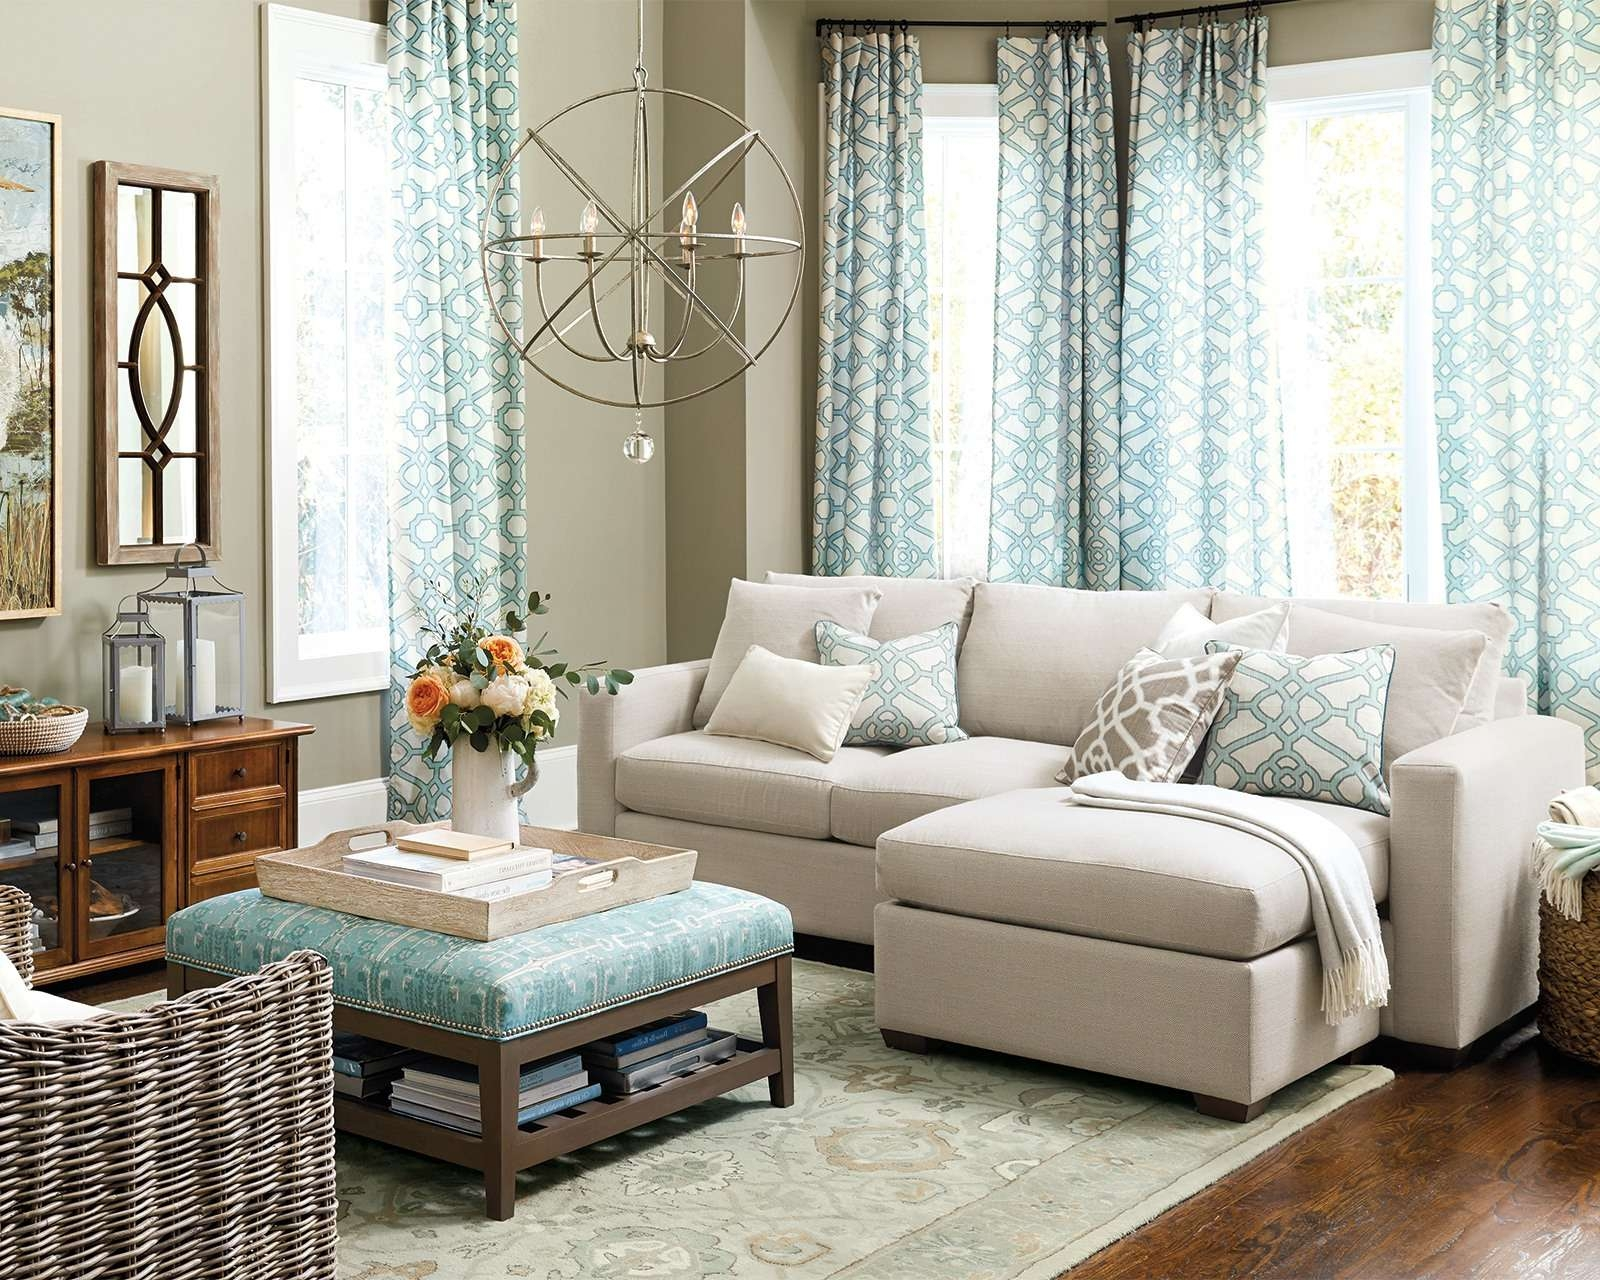 Most Up To Date Coffee Table For Sectional Sofa Within How To Match A Coffee Table To Your Sectional – How To Decorate (View 6 of 20)